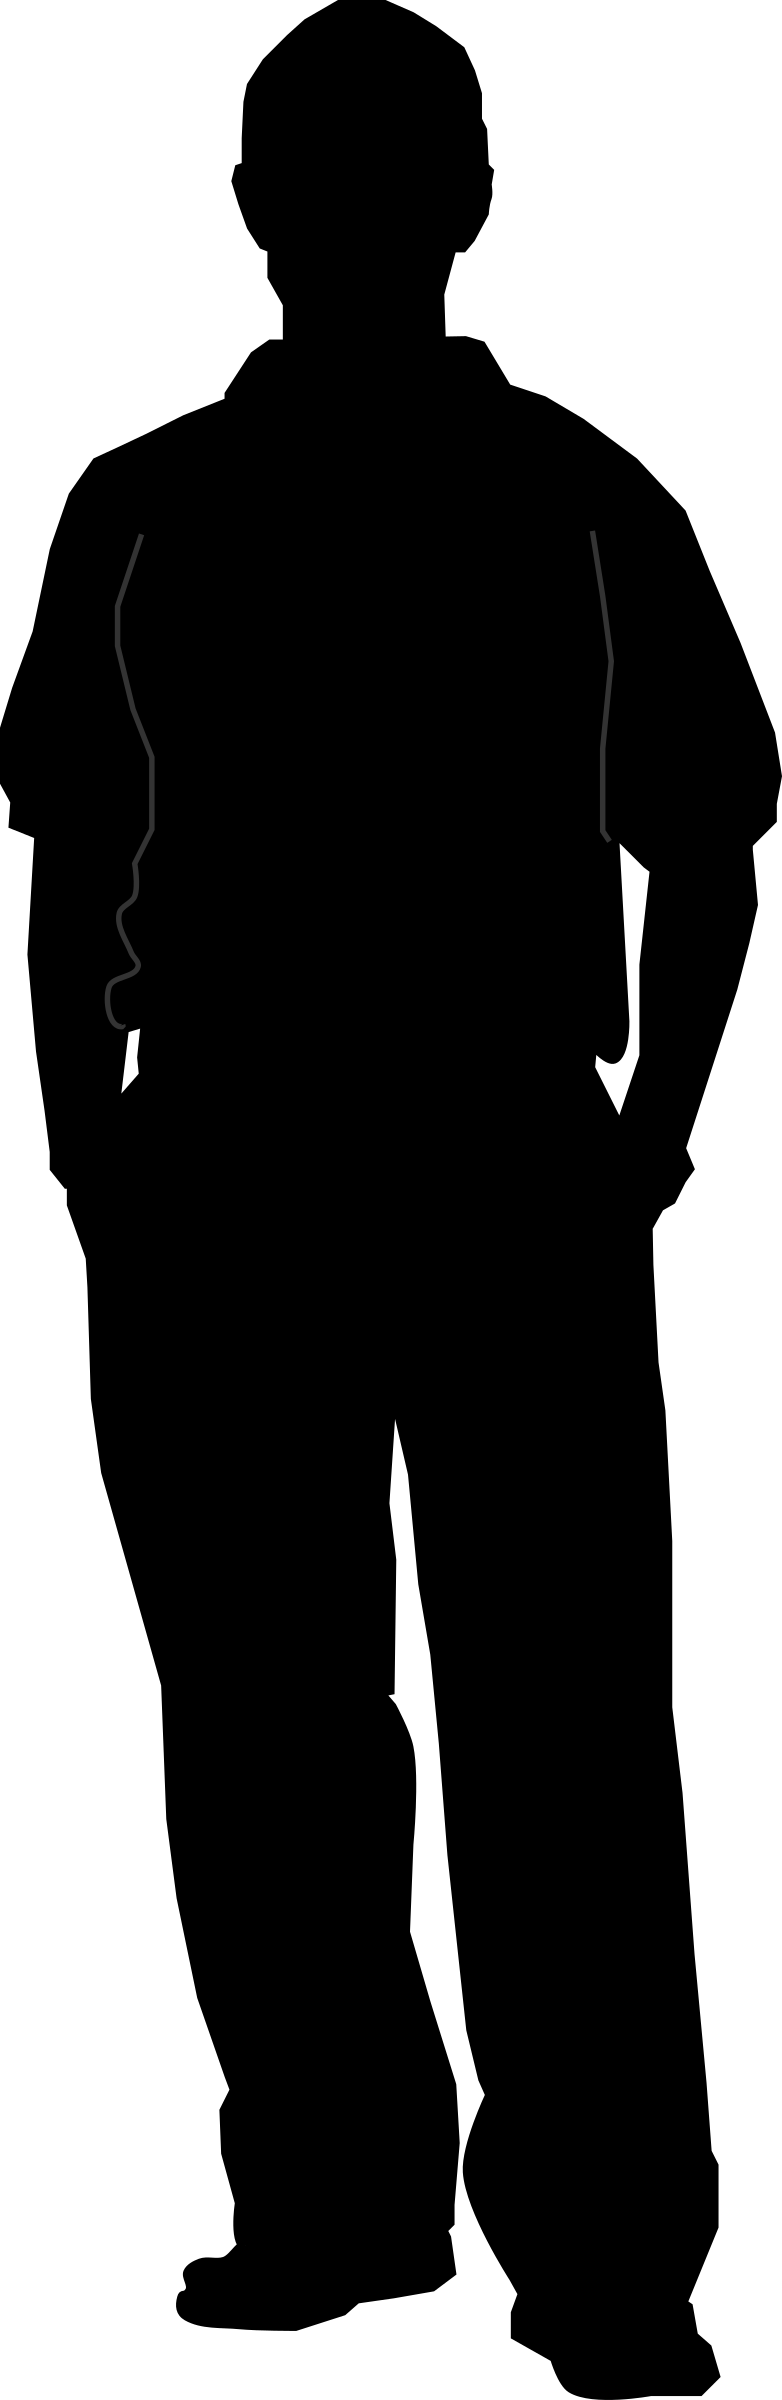 Dad clipart standing alone. Male silhouette at getdrawings